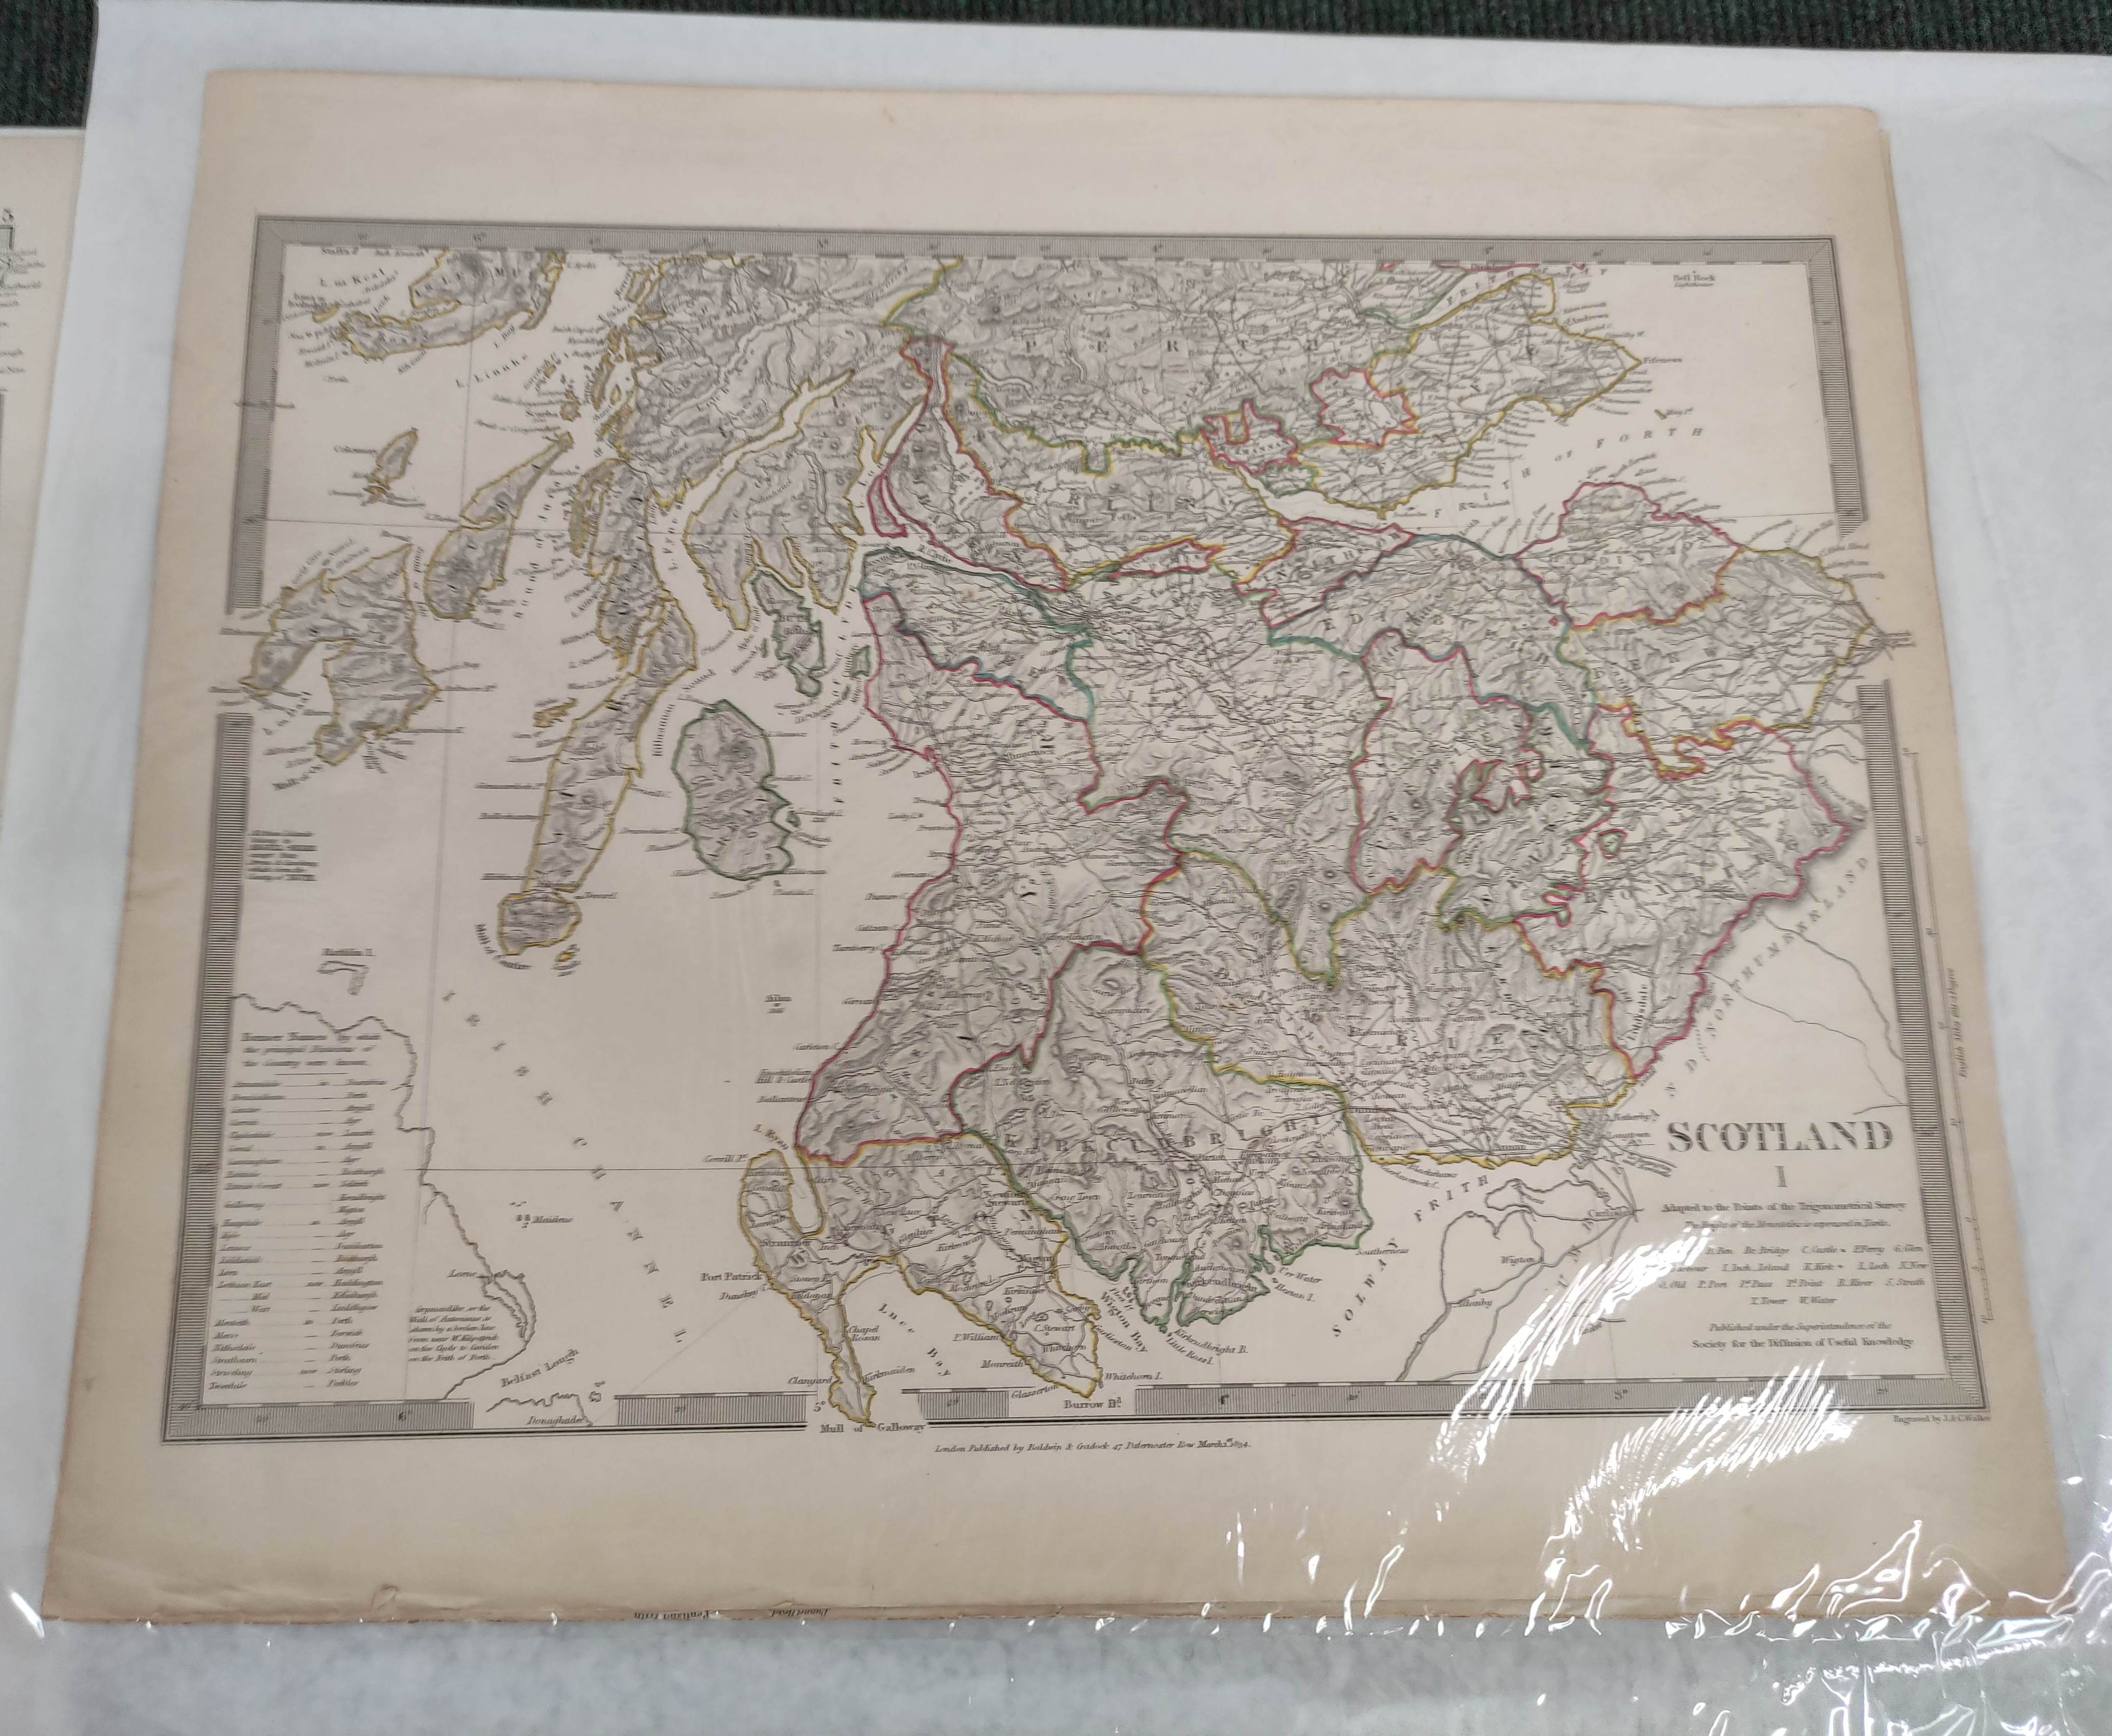 Engraved Maps.2 hand coloured eng. double maps of Ireland & Scotland by S. Augustus Mitchell, - Image 3 of 7